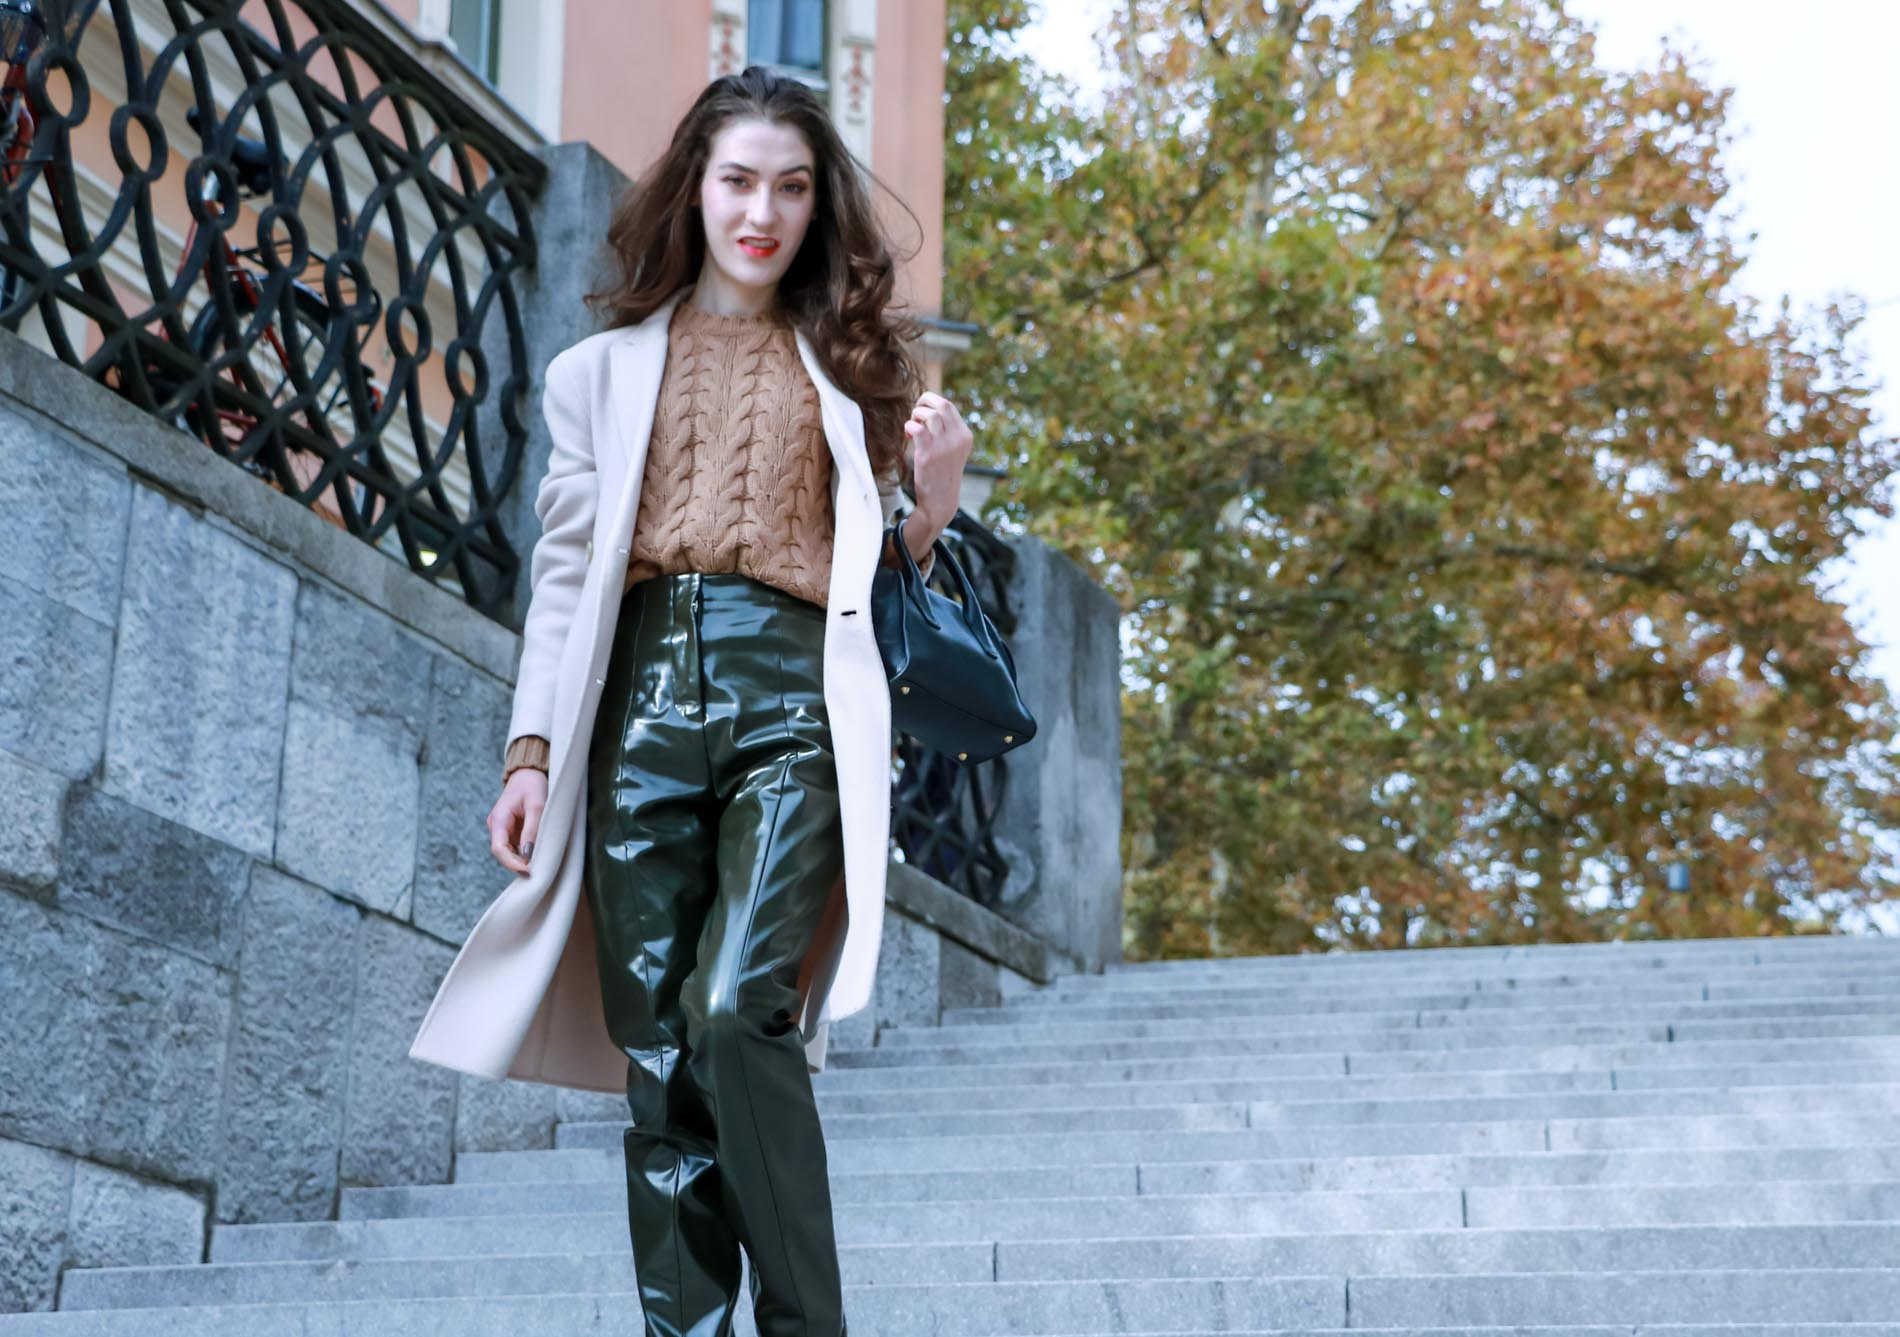 Fashion Blogger Veronika Lipar of Brunette from Wall Street wearing chic winter work outfit